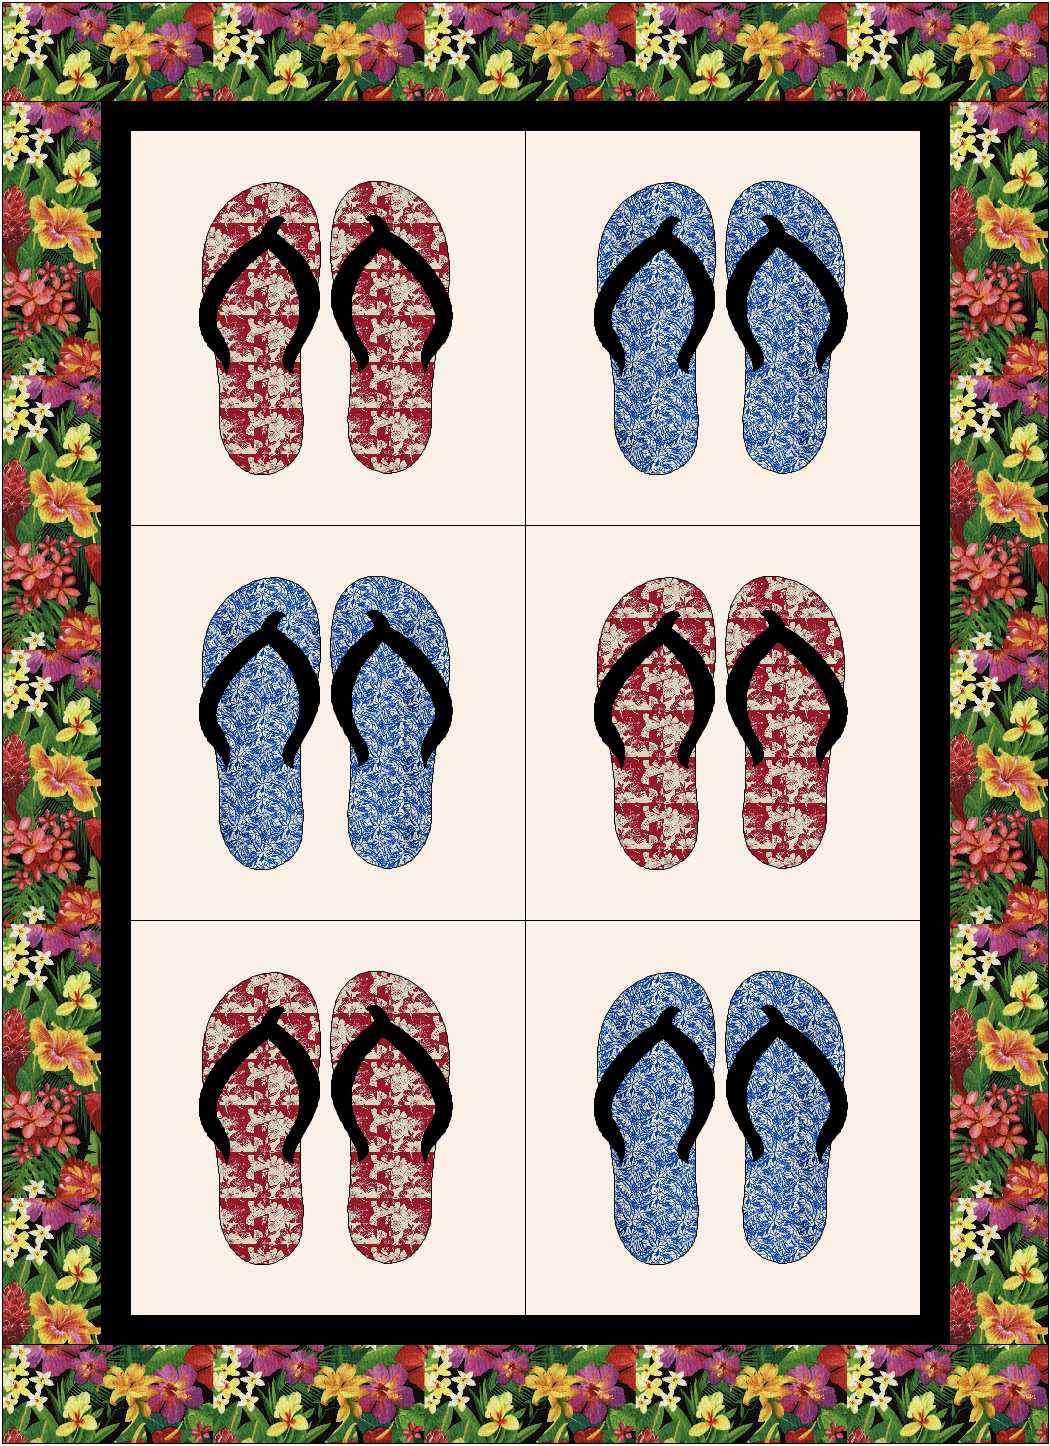 Kapa Slipper Quilt Kit